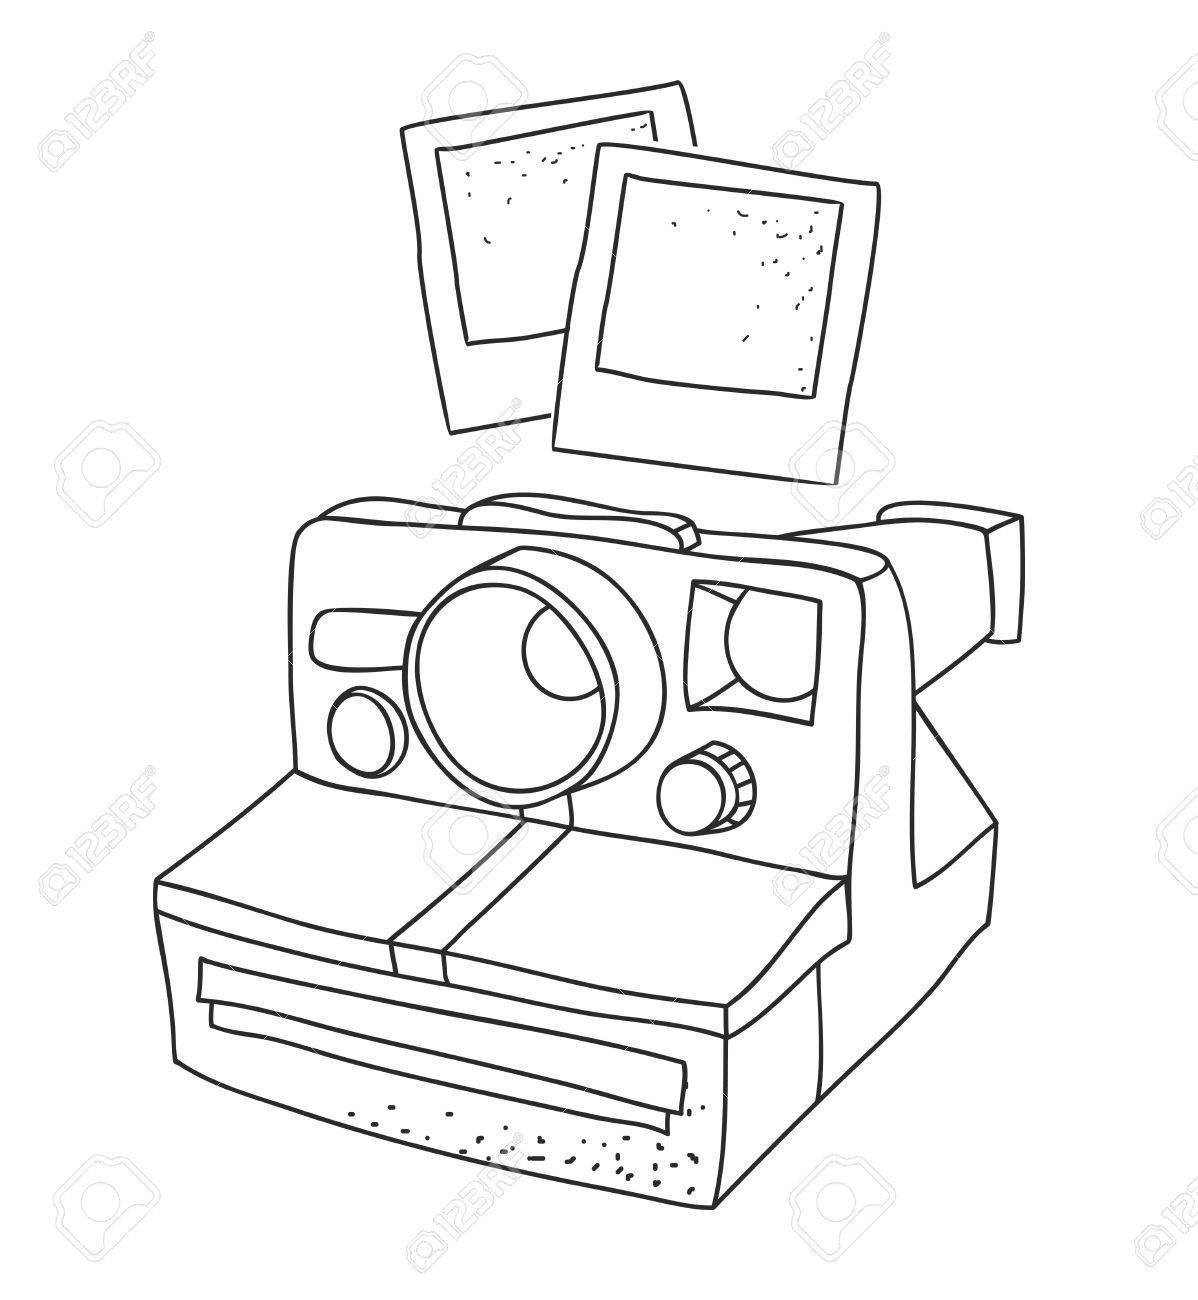 1198x1300 Black And White Silhouette Of Old Photo Camera. Vector